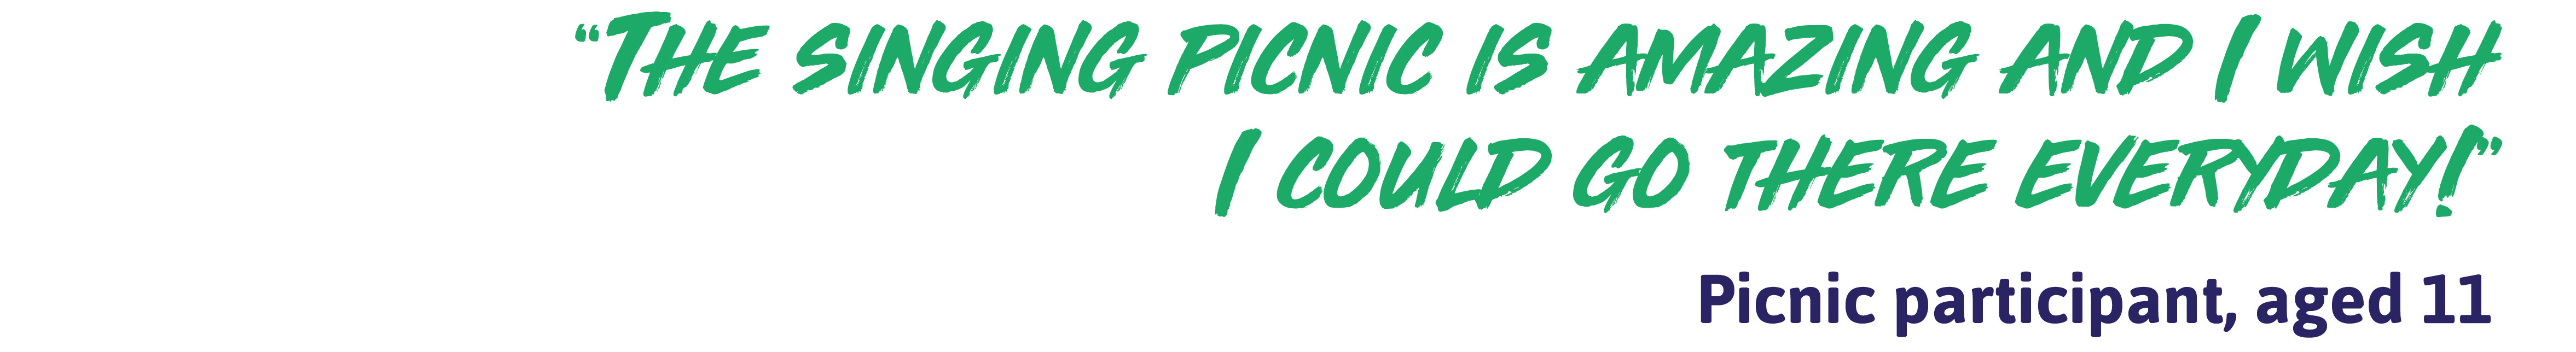 "Quote: ""The singing picnic is amazing and I wish I could go there everyday!"" - Picnic participant, aged 11"